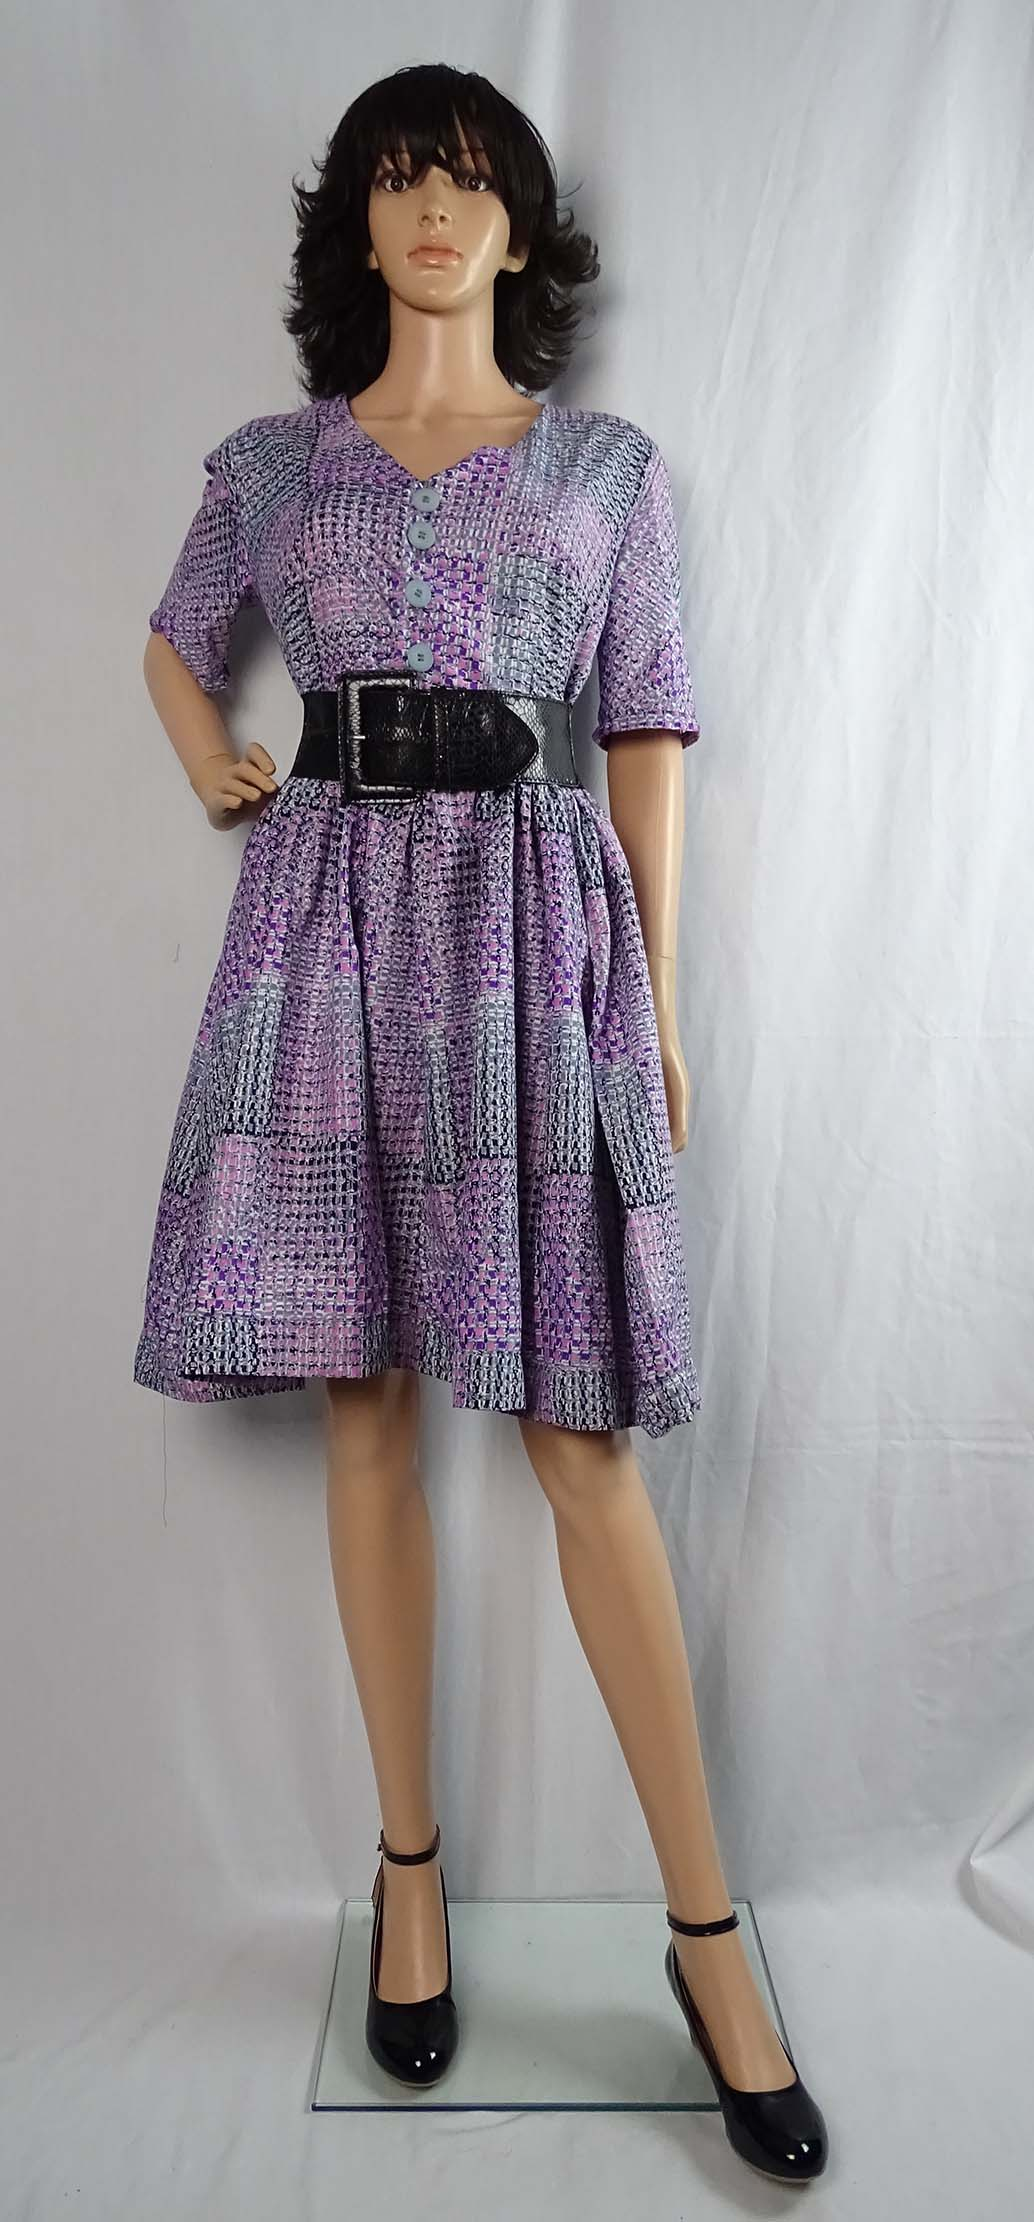 Wax print Simplicity 1459 top and skirt 4 by Anino